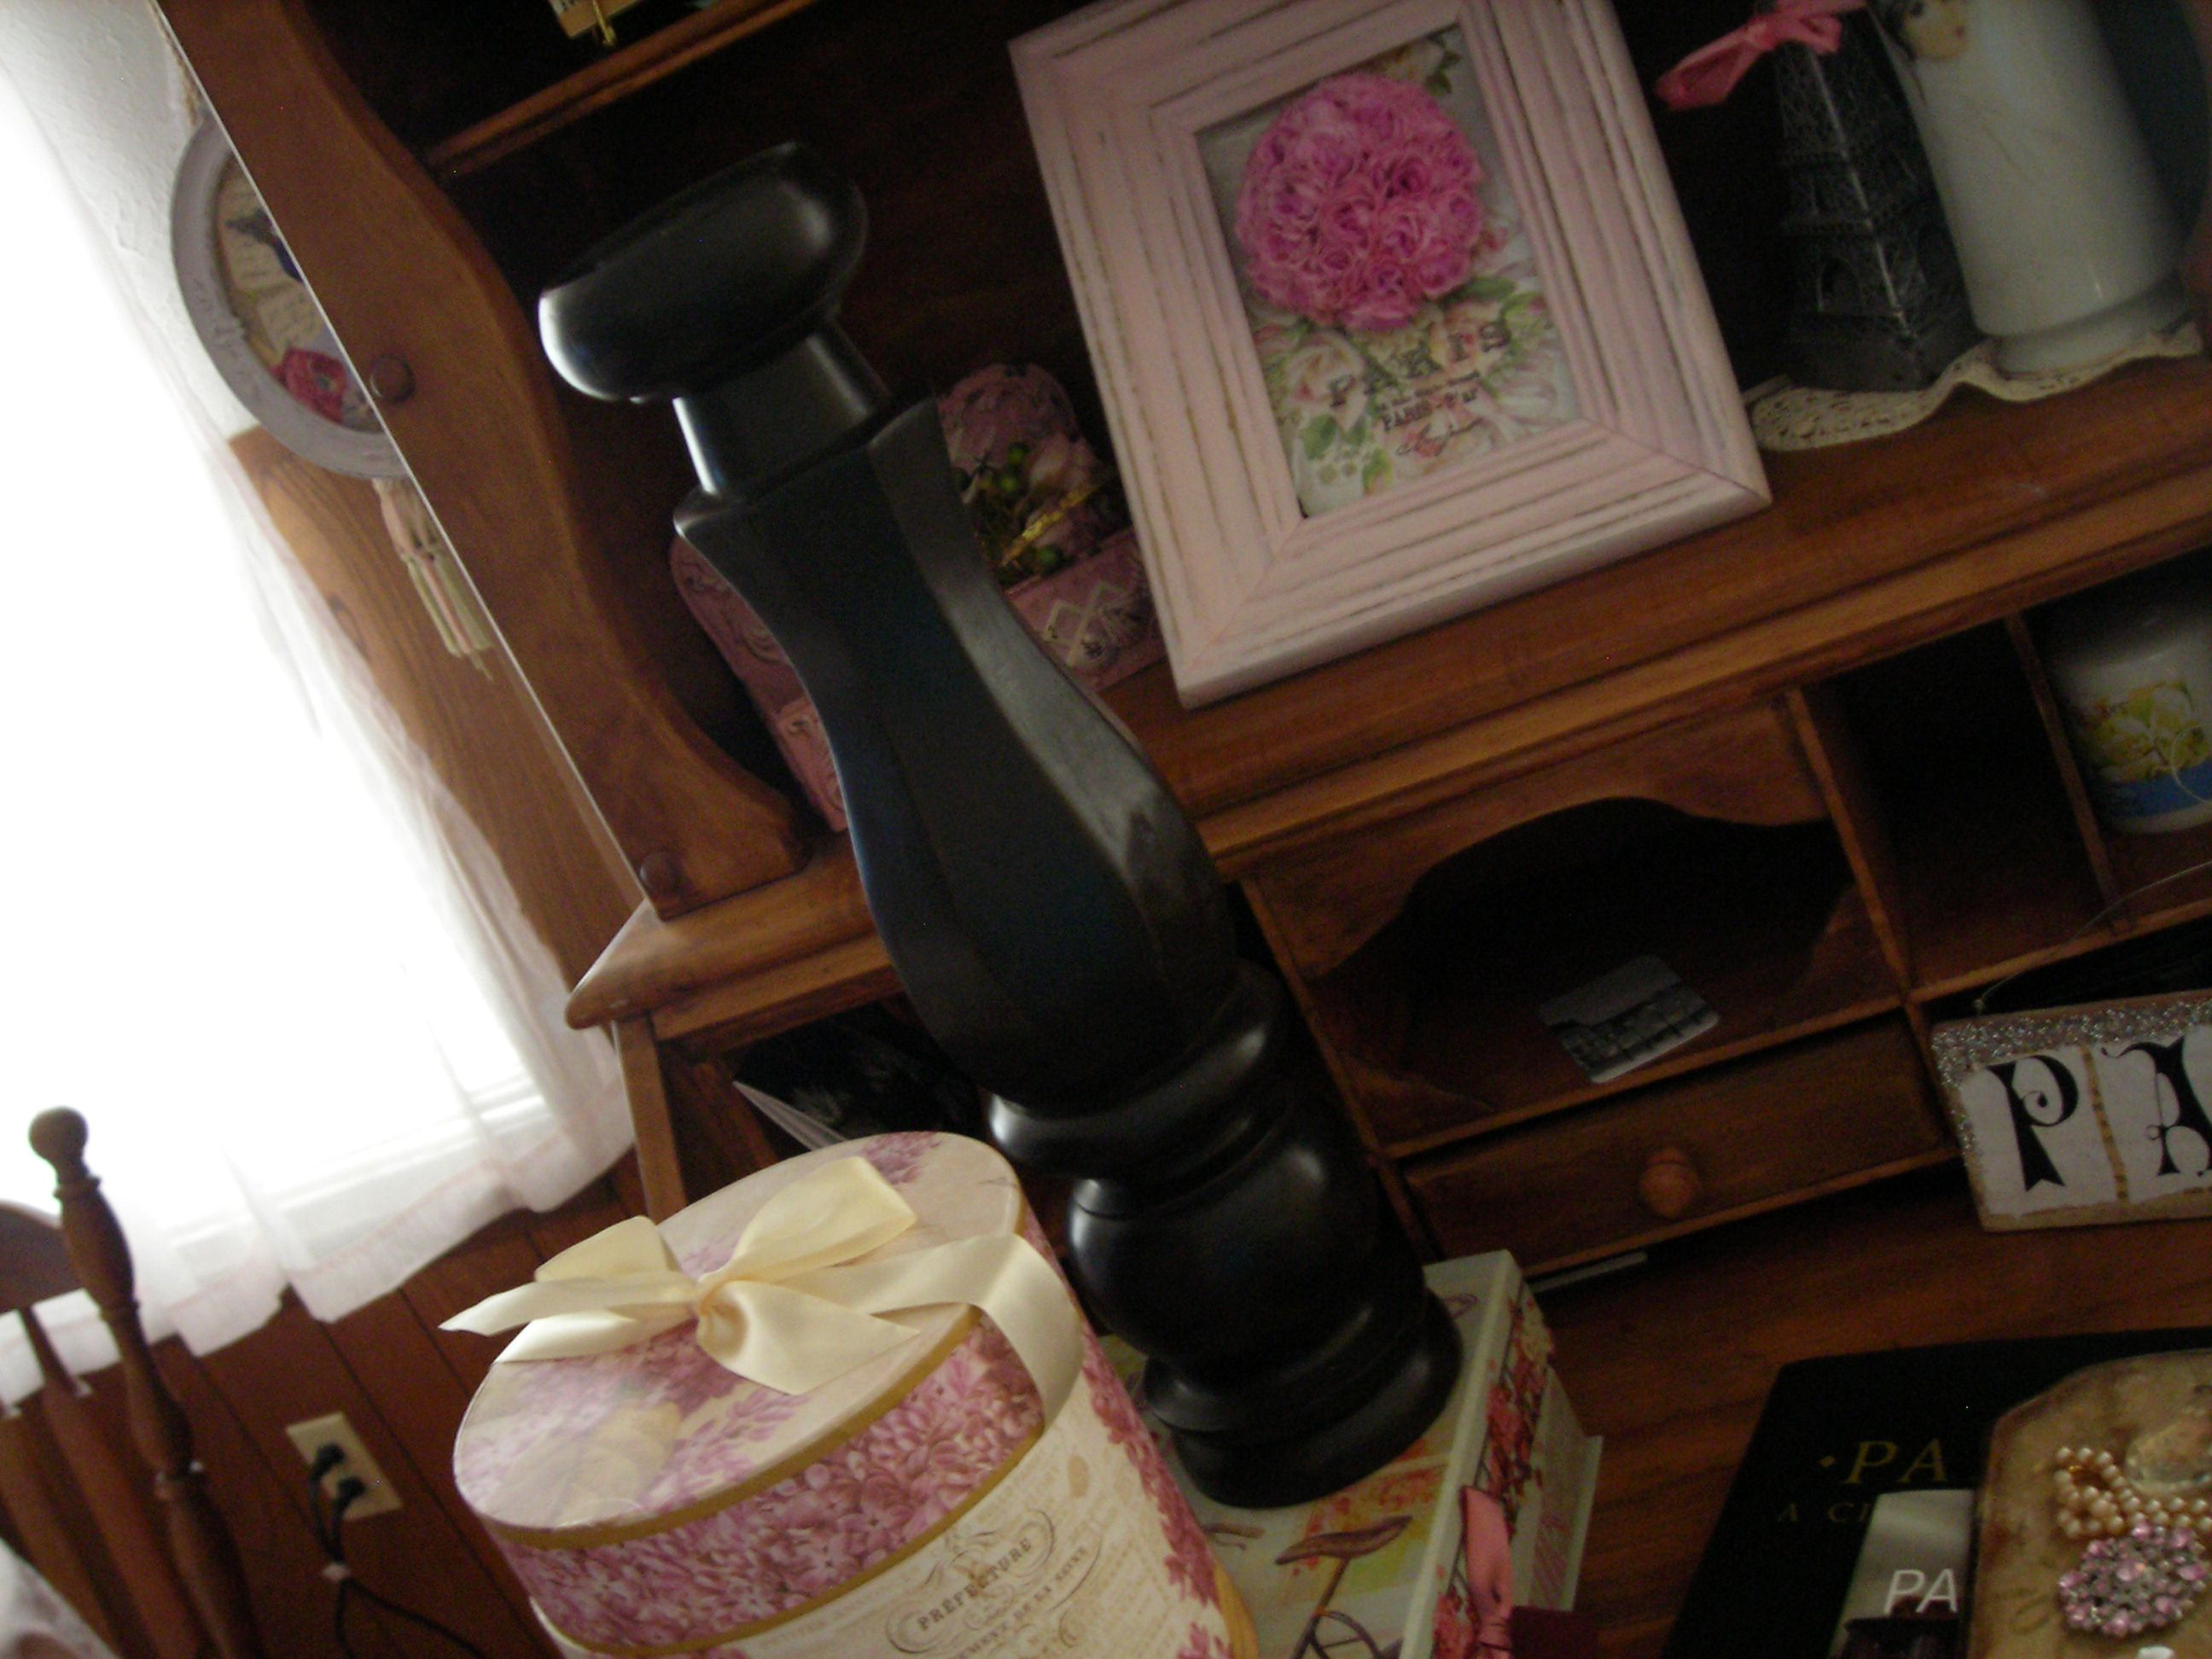 wonderful huge candlestick ... will paint it pink or antique white. umm, can you see that tall dark thing in the center of pic? that's what i'm talkin' about.